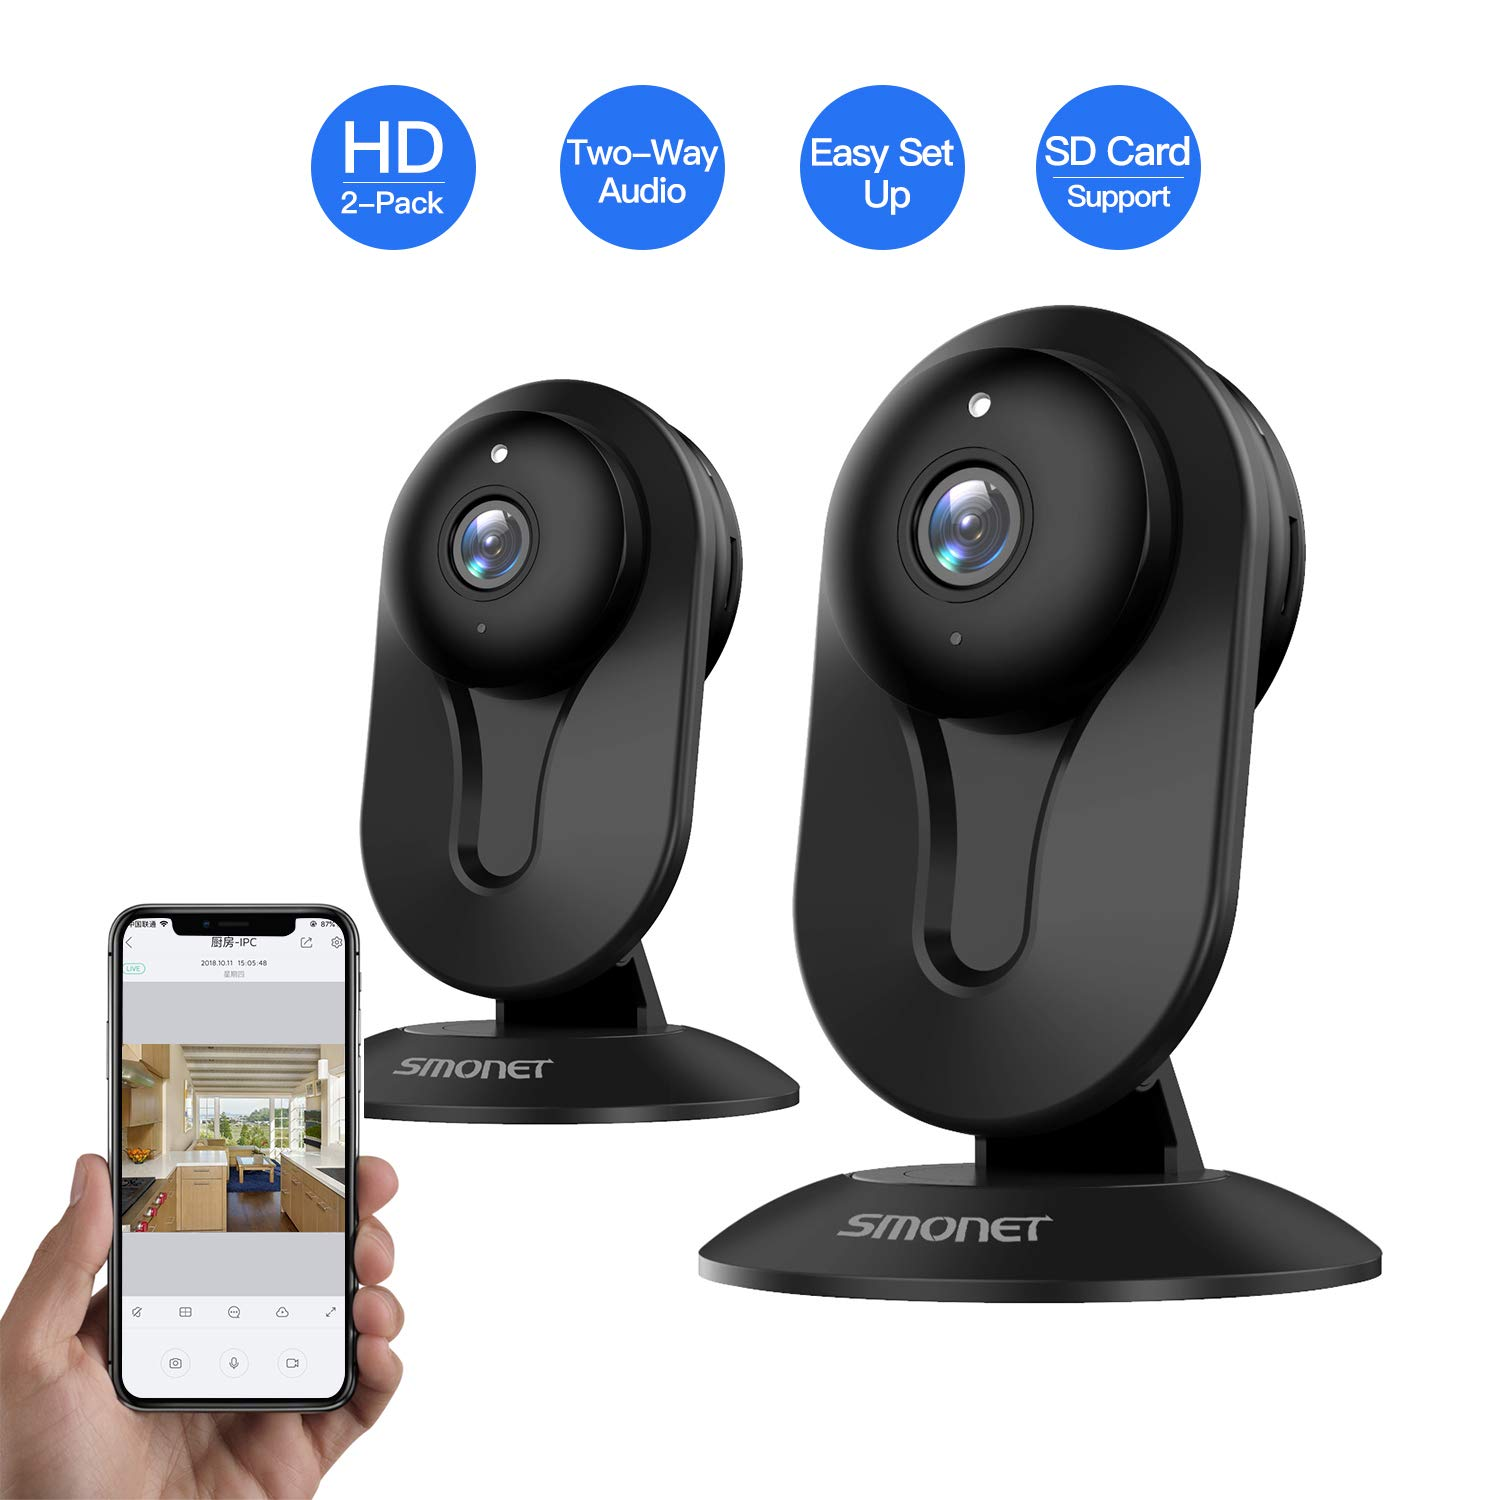 SMONET Wireless IP Camera, HD IP Security Camera Built in Two-Way Audio, Security Surveillance CCTV Camera with Night Vision-Cloud Service Available 2packs,Black